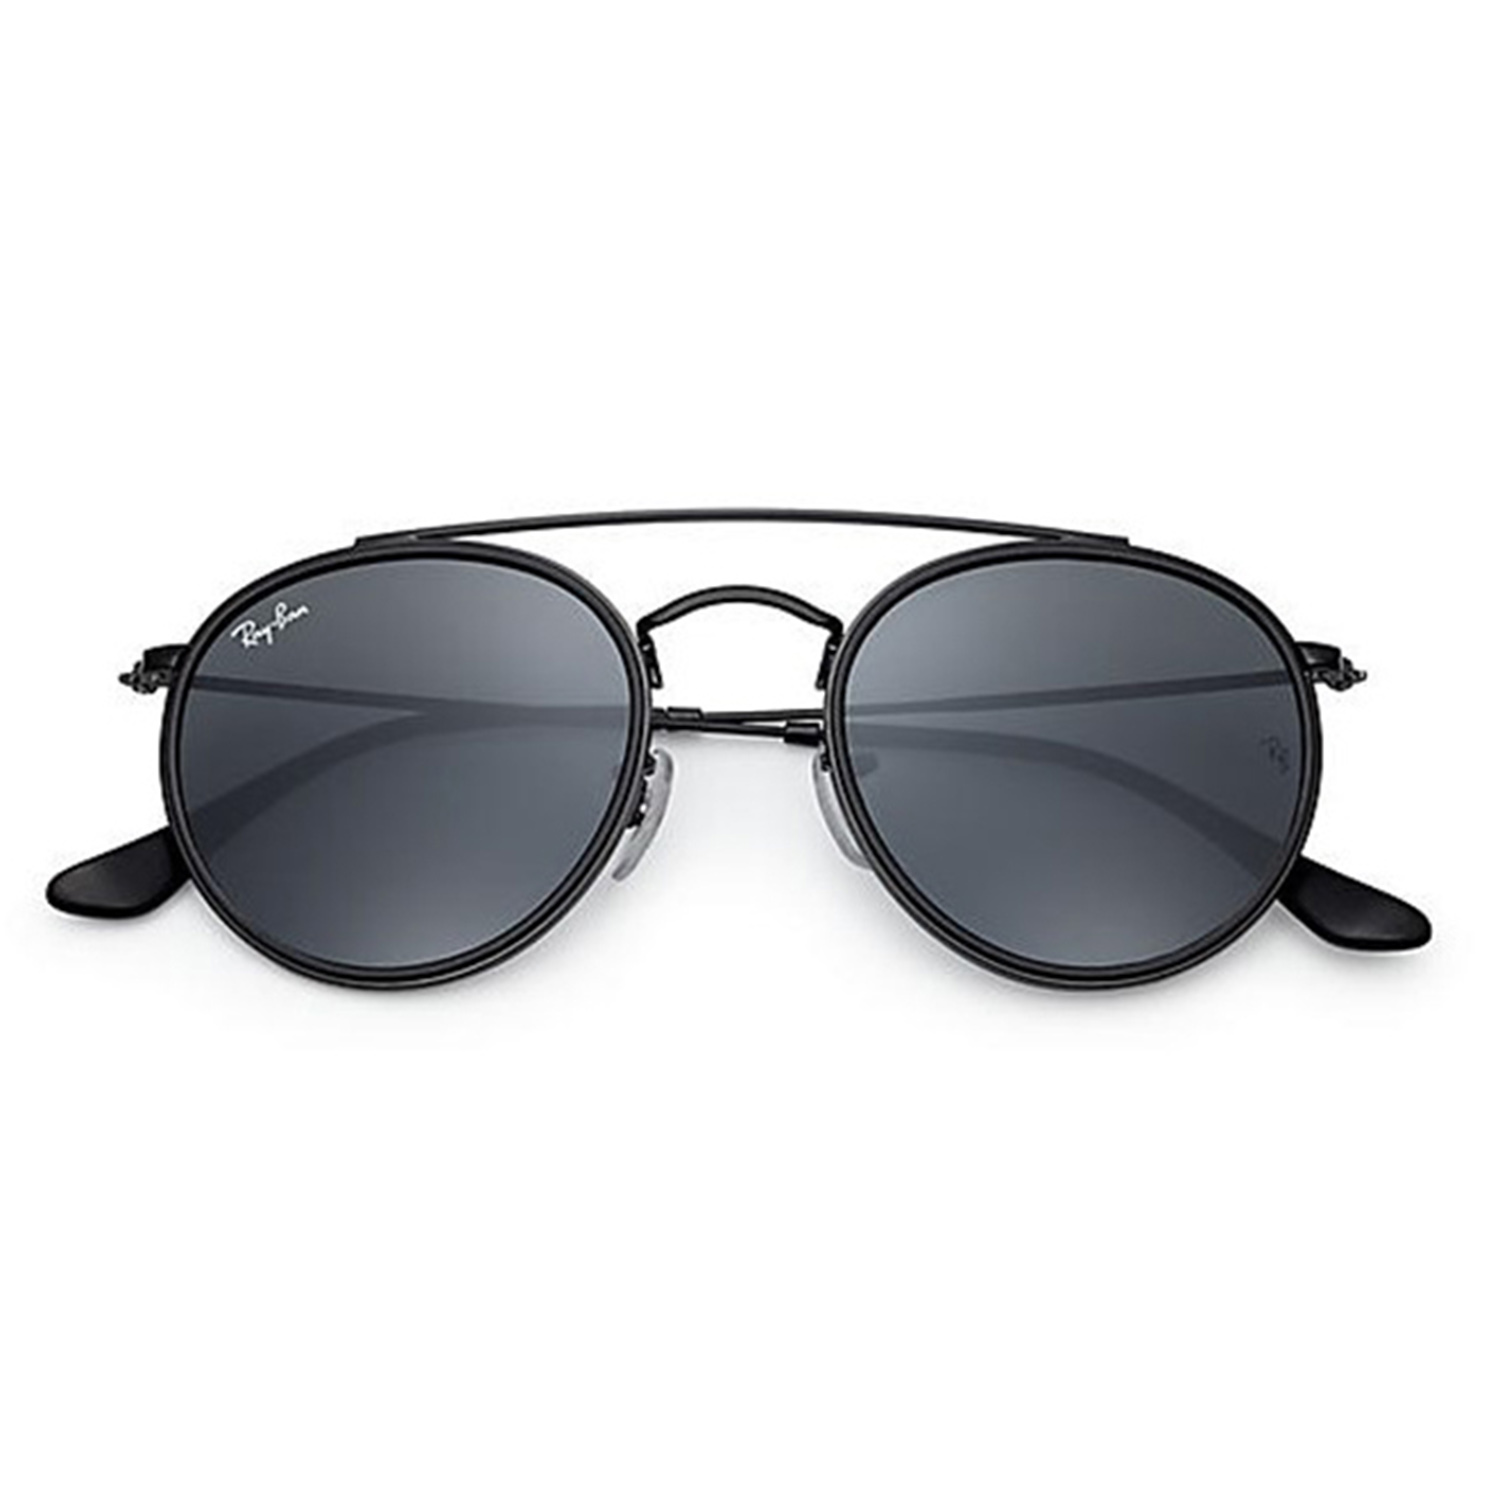 3cd354010f6 Ray Ban RB3647N Round Shape Sunglasses For Unisex